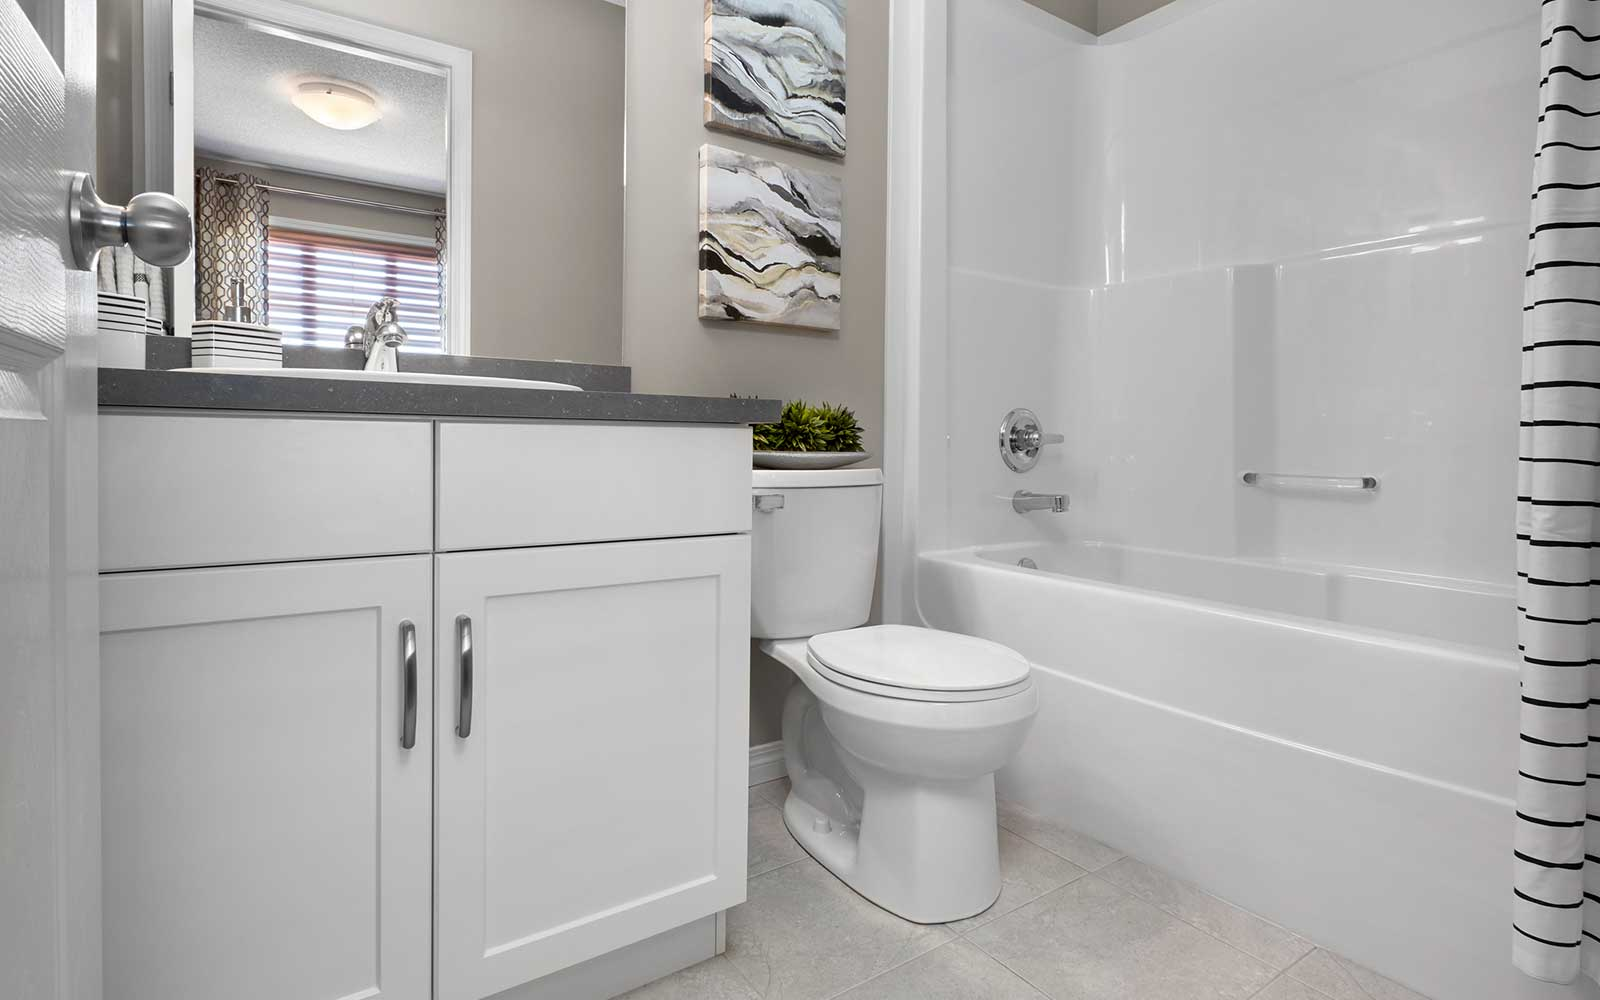 A bathroom in the Van Gogh townhome model by Brookfield Residential in Edmonton.